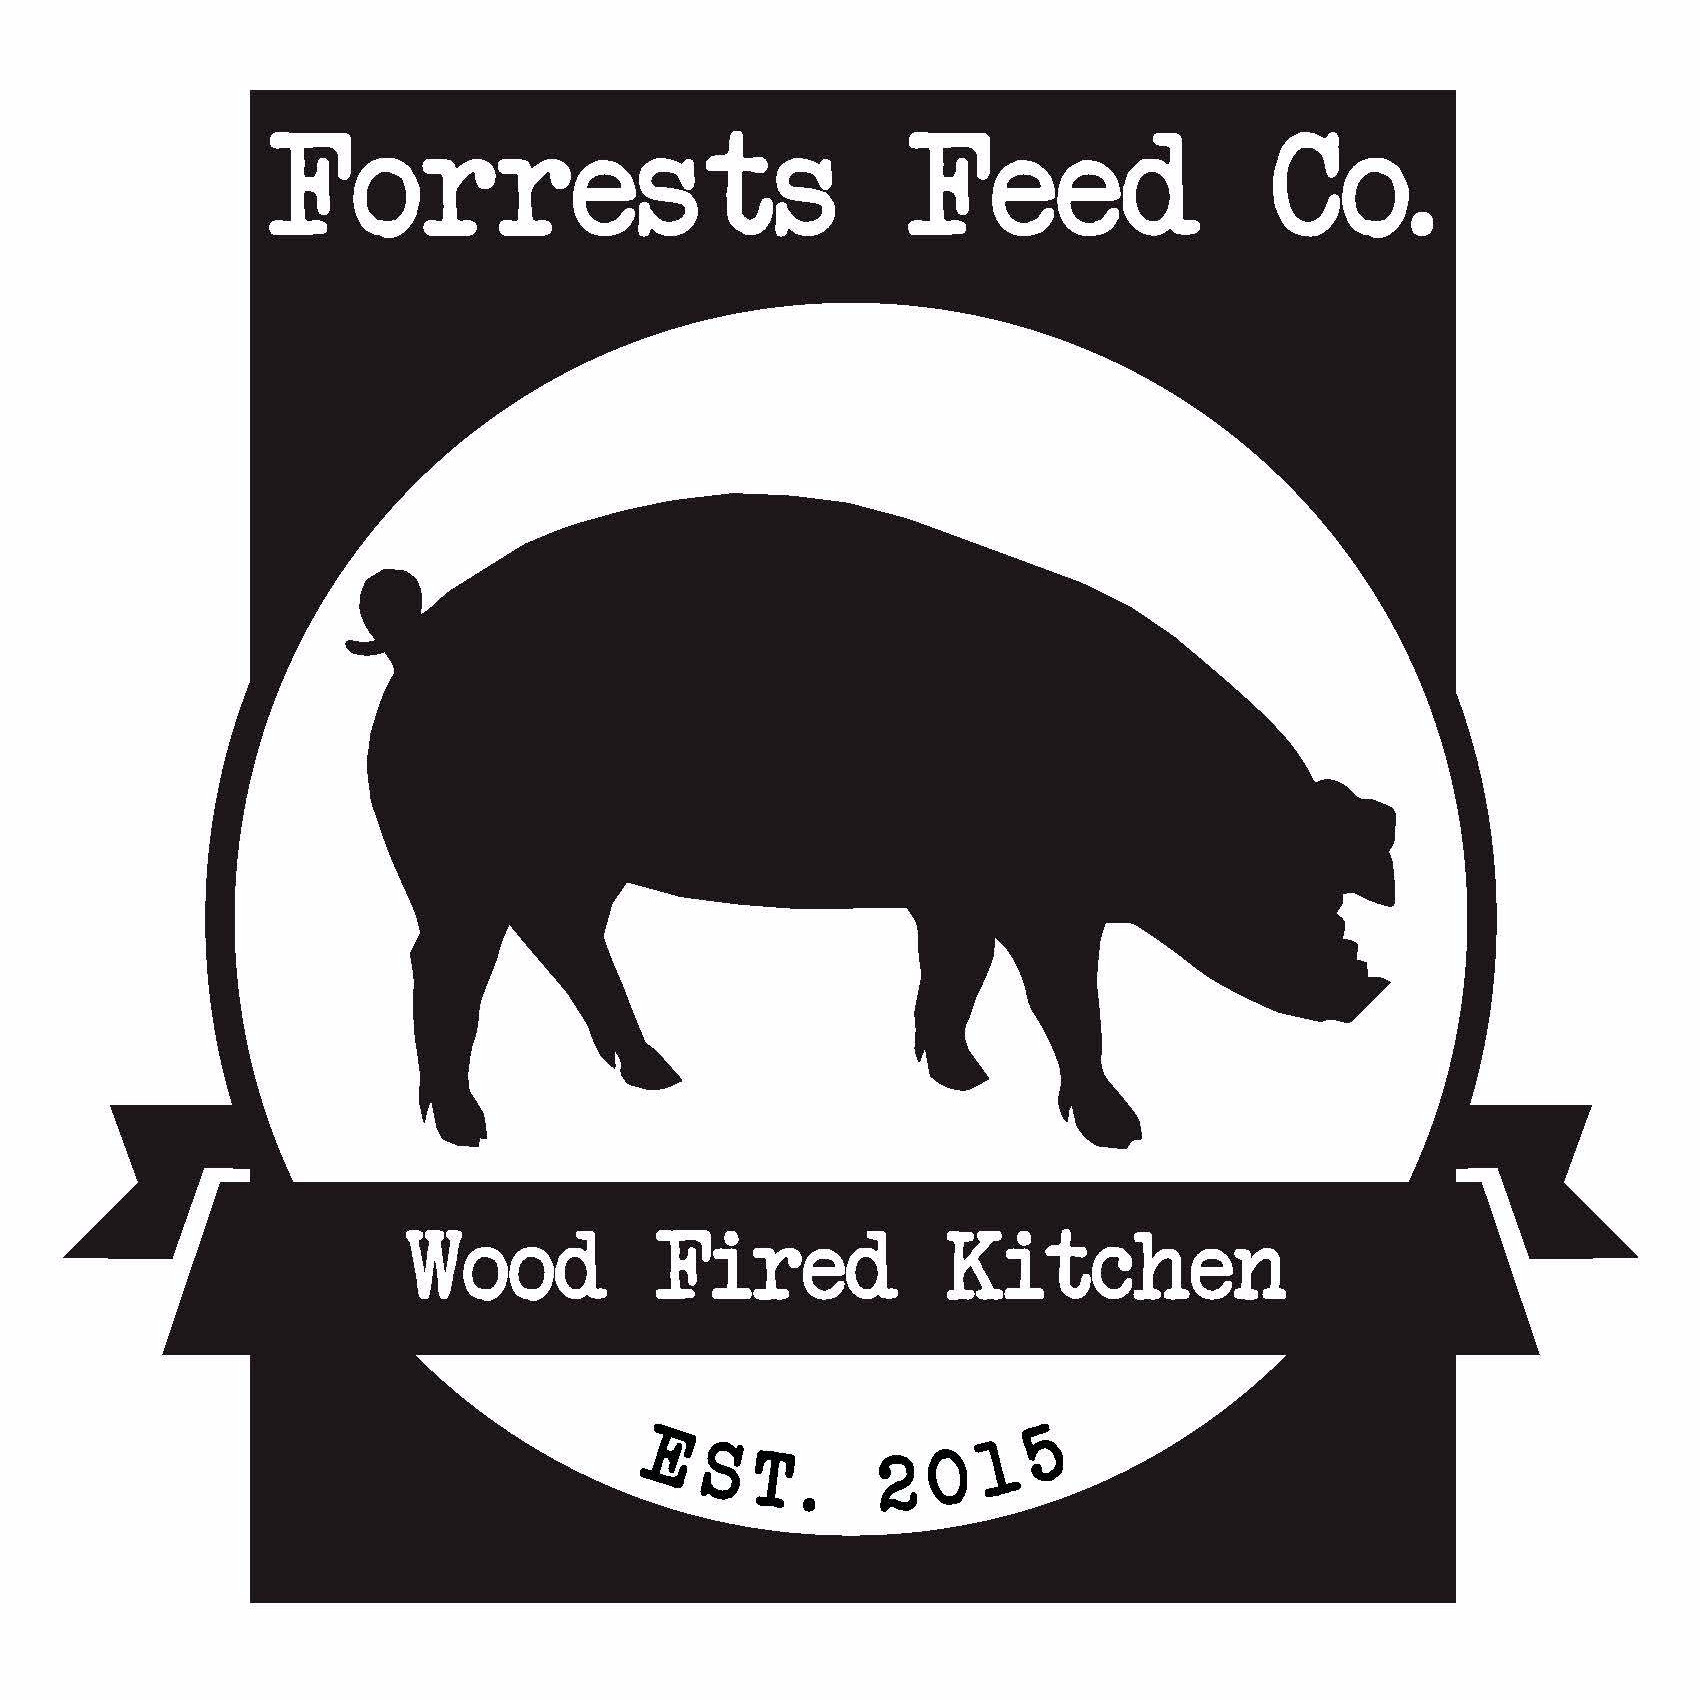 Forrest's Feed Co. logo